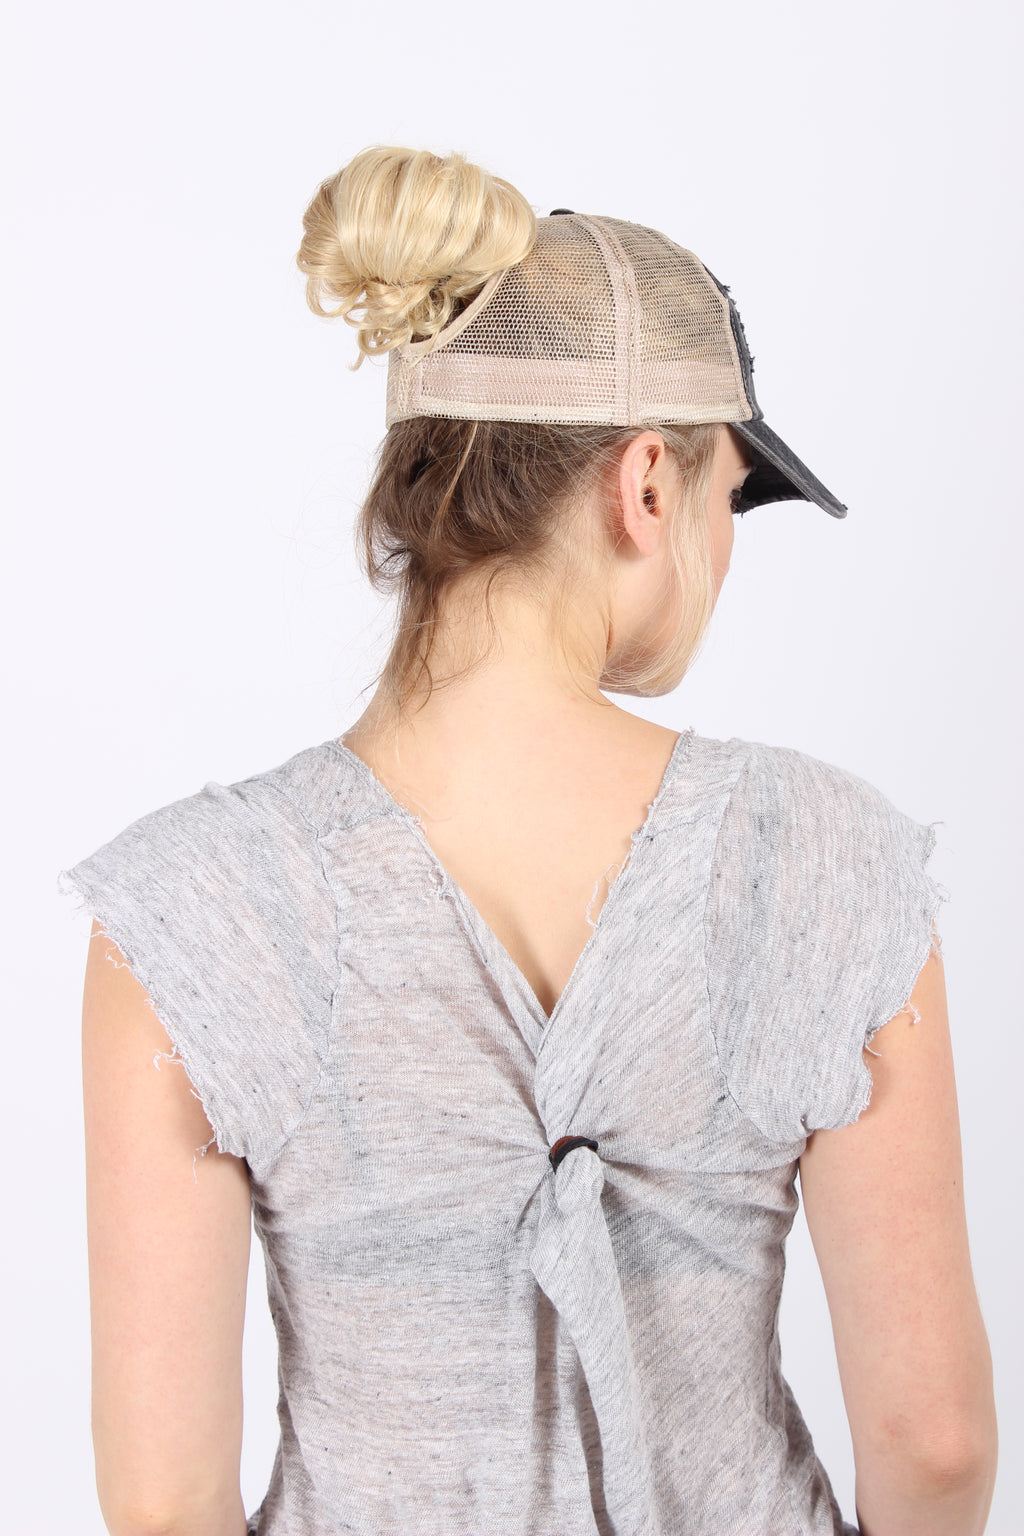 FWCAPMT472 - Distressed Mesh Back Ponyflo Cap - David and Young Fashion Accessories